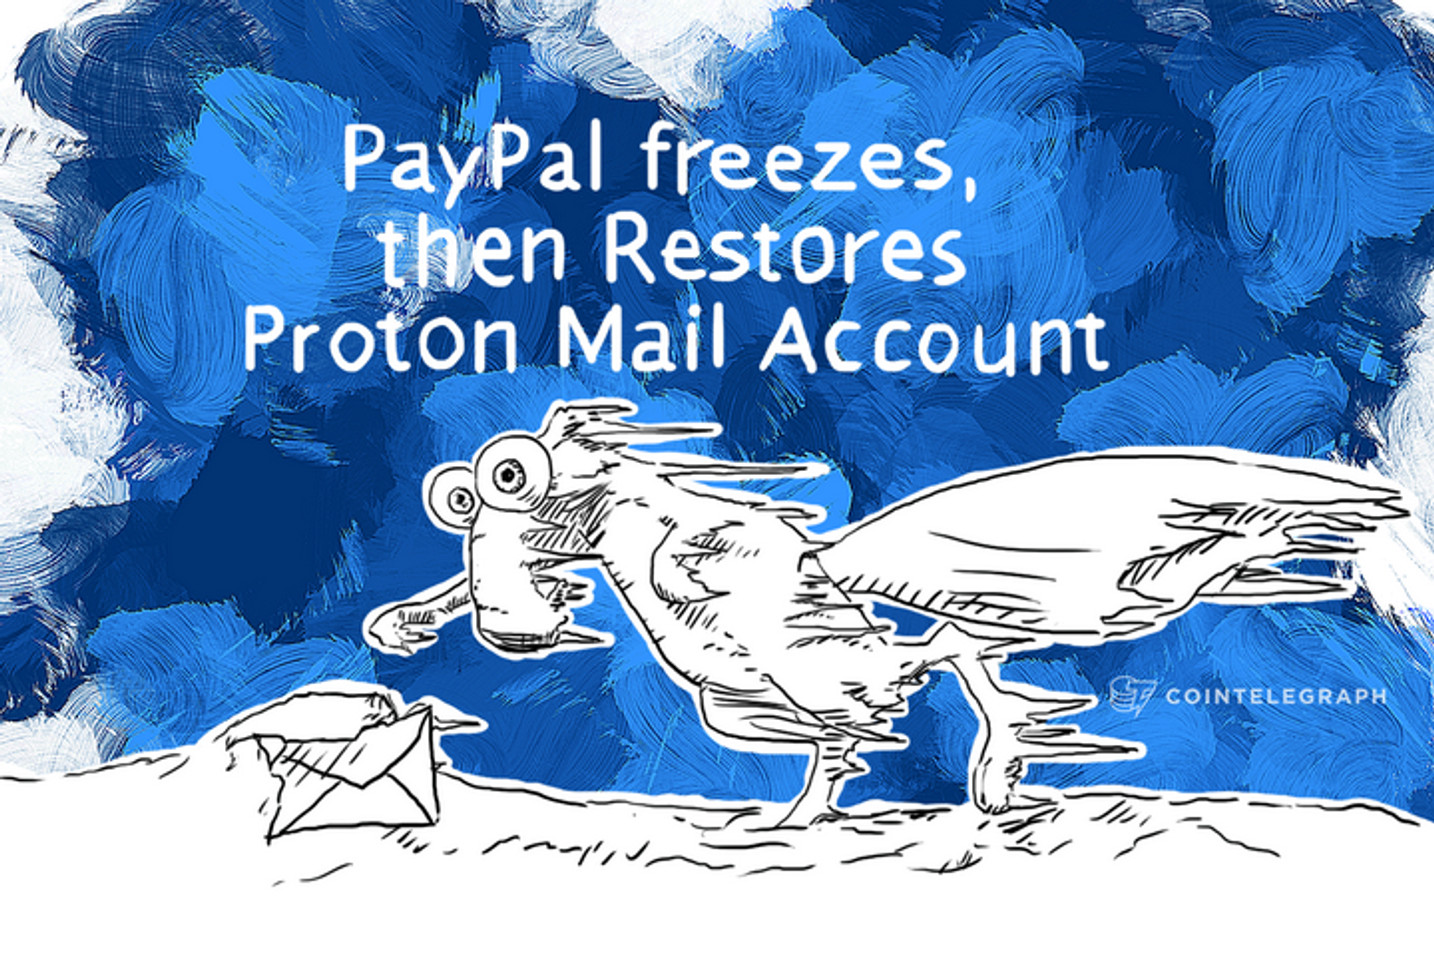 PayPal freezes, then Restores Proton Mail Account